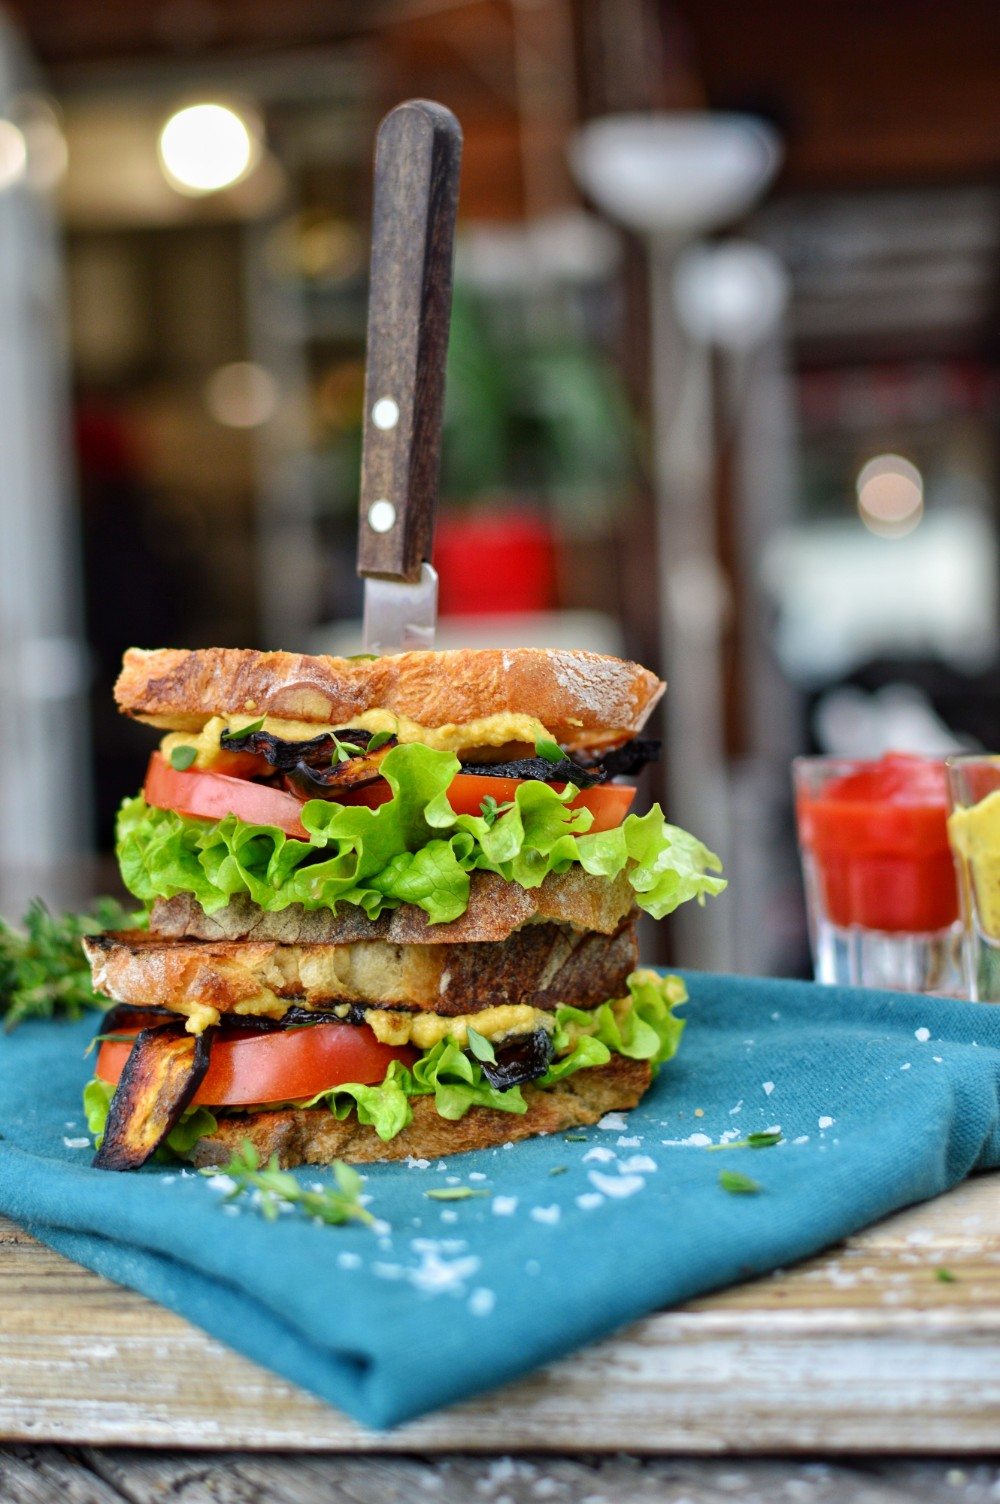 Eggplant Vegan Bacon | Make A Vegan BLT Sandwich | WorldofVegan.com | #veganbacon #eggplantbacon #veganblt #sandwich #vegansandwich